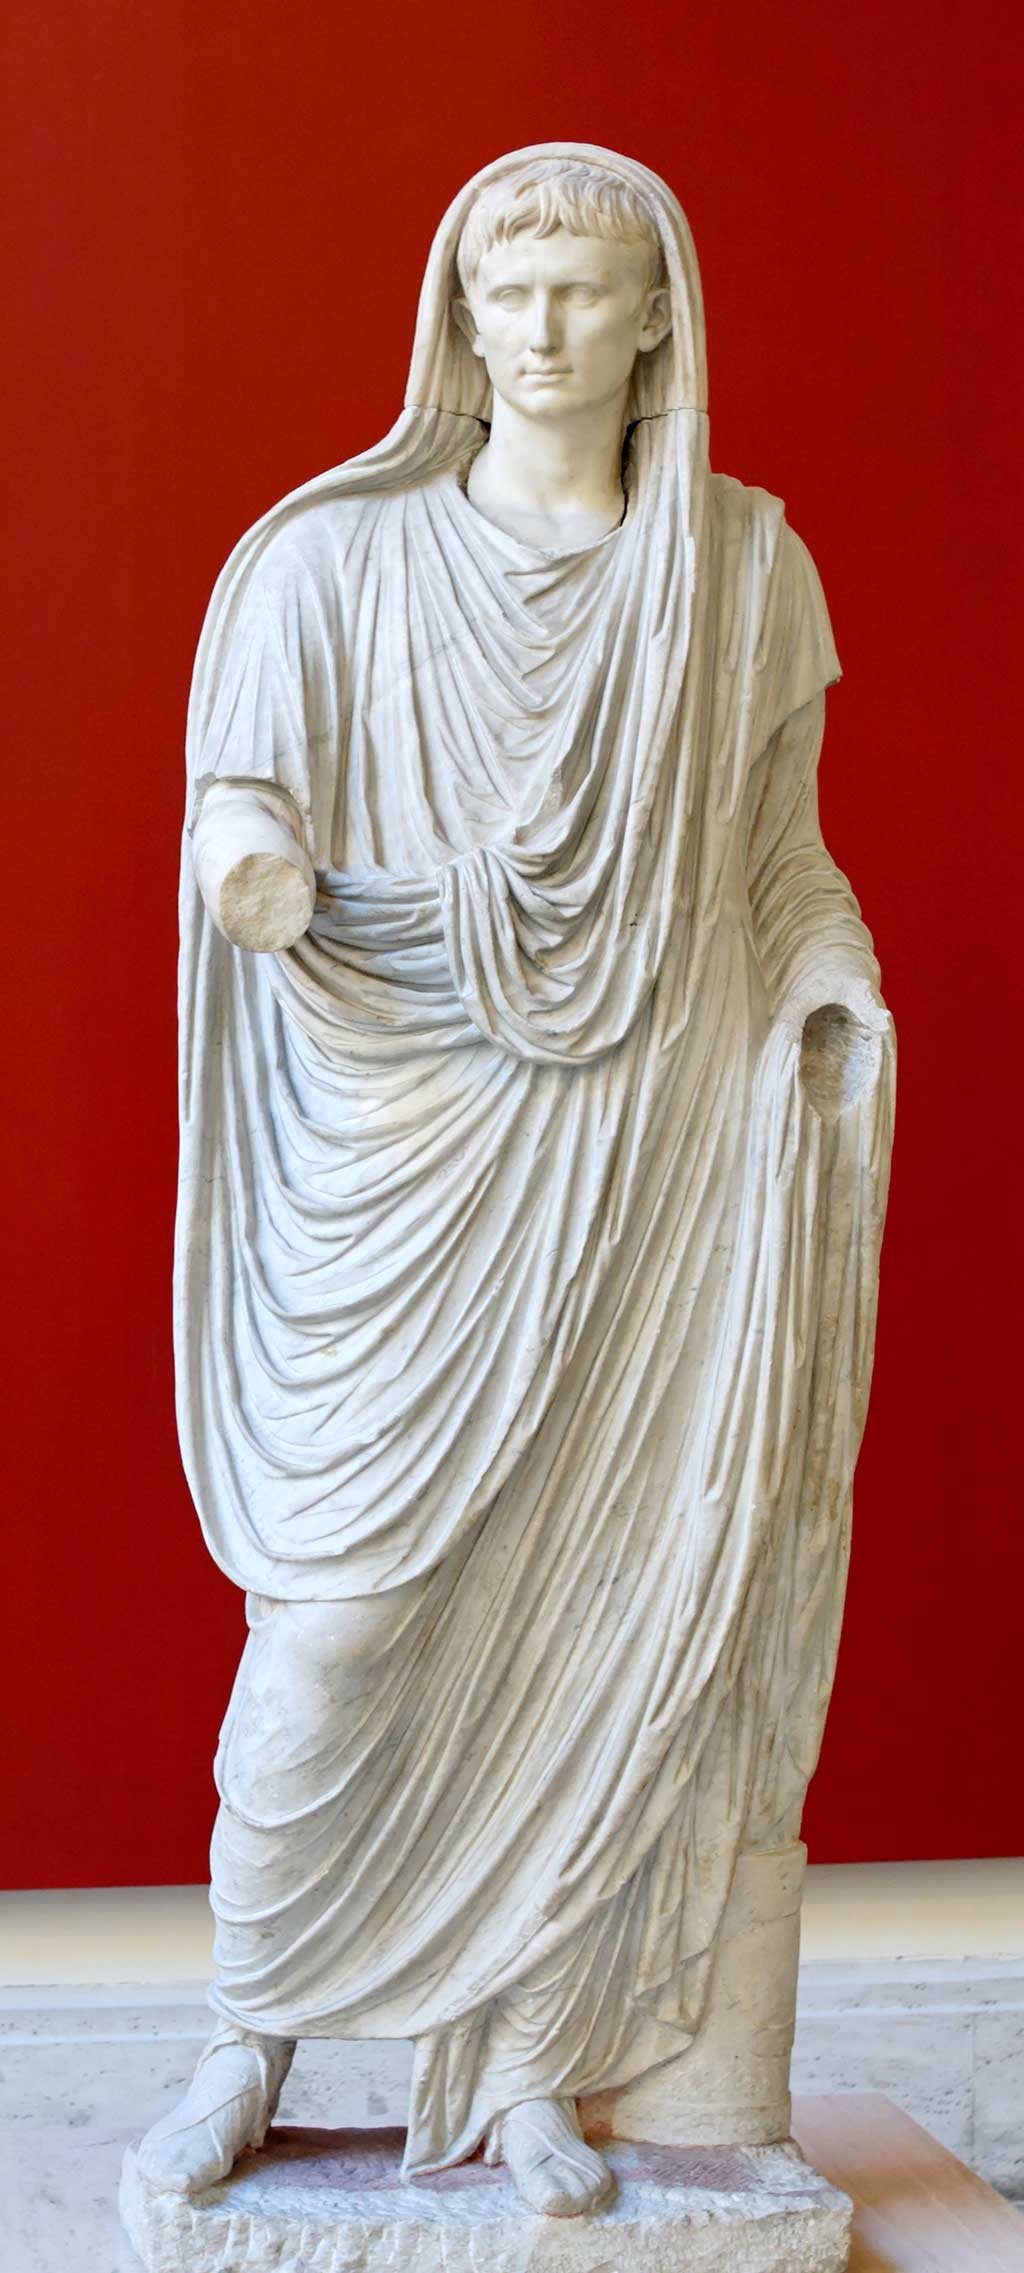 This photo shows a statue of Augustus portrayed as Pontifex Maximus, attired with a toga over his ever-youthful head, an attribute that serves to remind viewers of his own extreme piety to the gods.